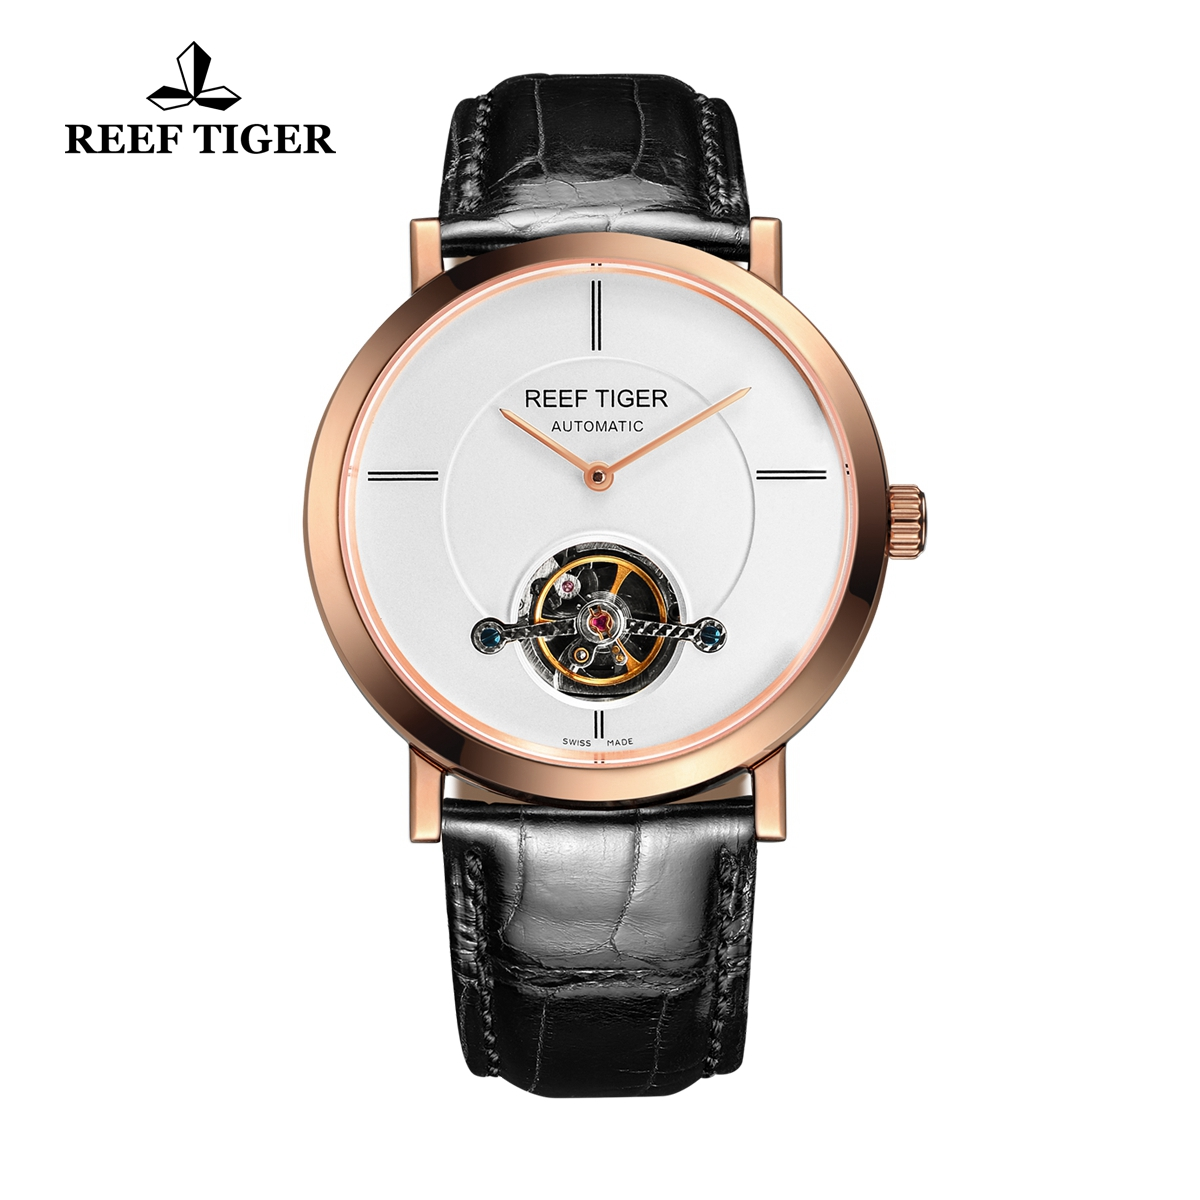 Reef Tiger Business Watch Rose Gold White Dial Automatic Tourbillon Watch RGA1610-PWB